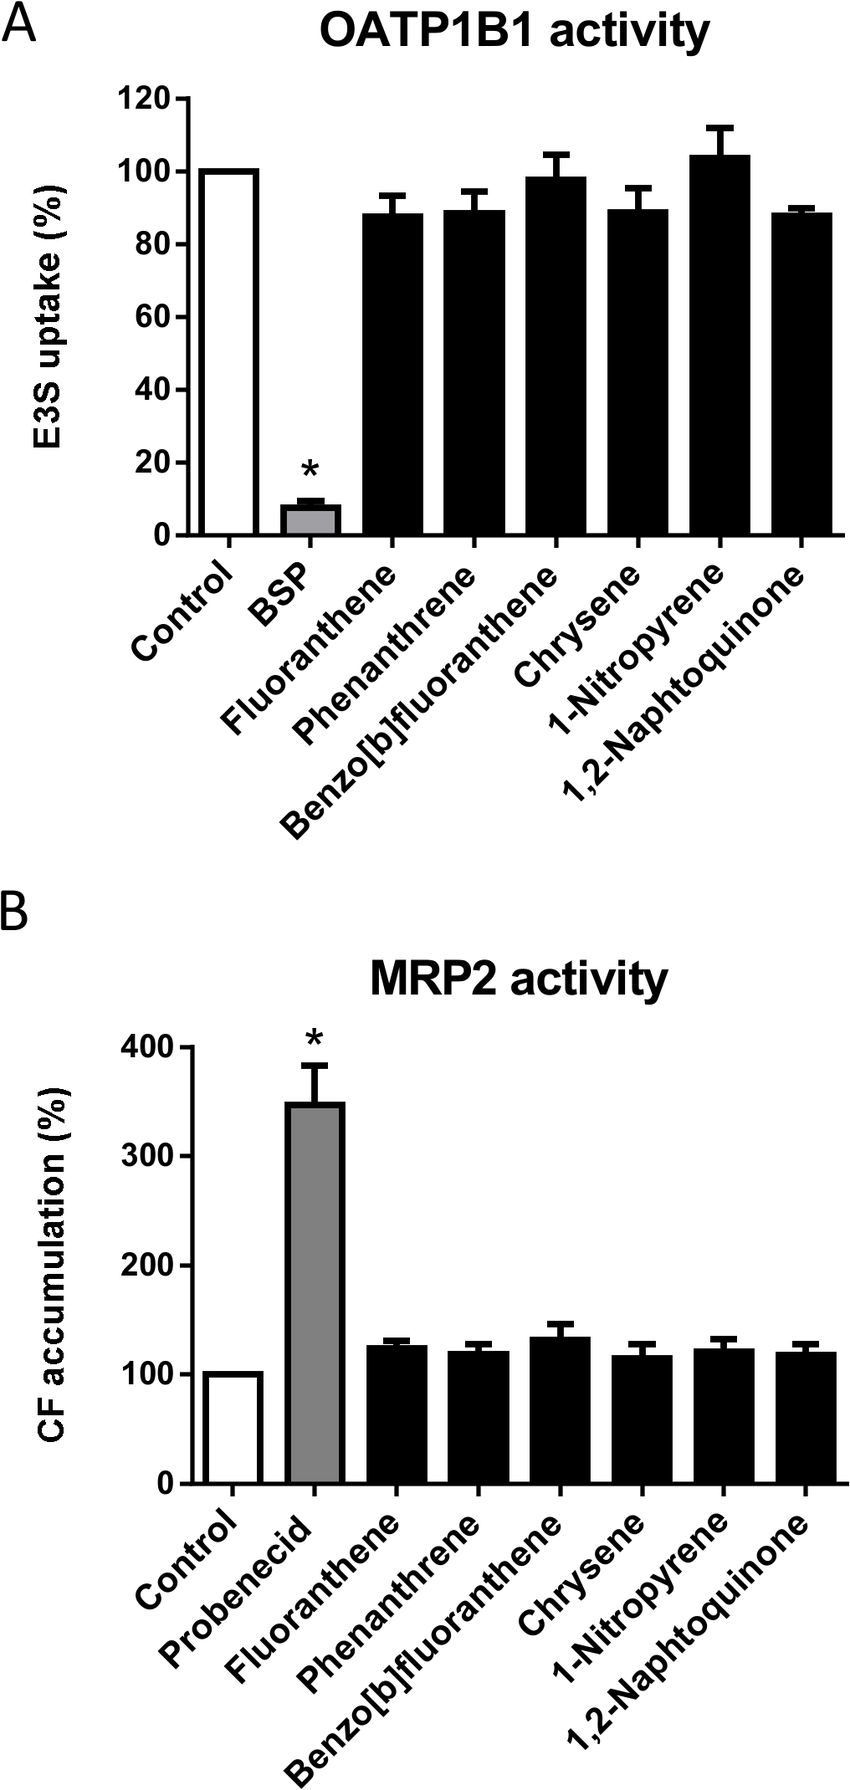 hight resolution of effects of various depe contained pahs on oatp1b1 and mrp2 activity a